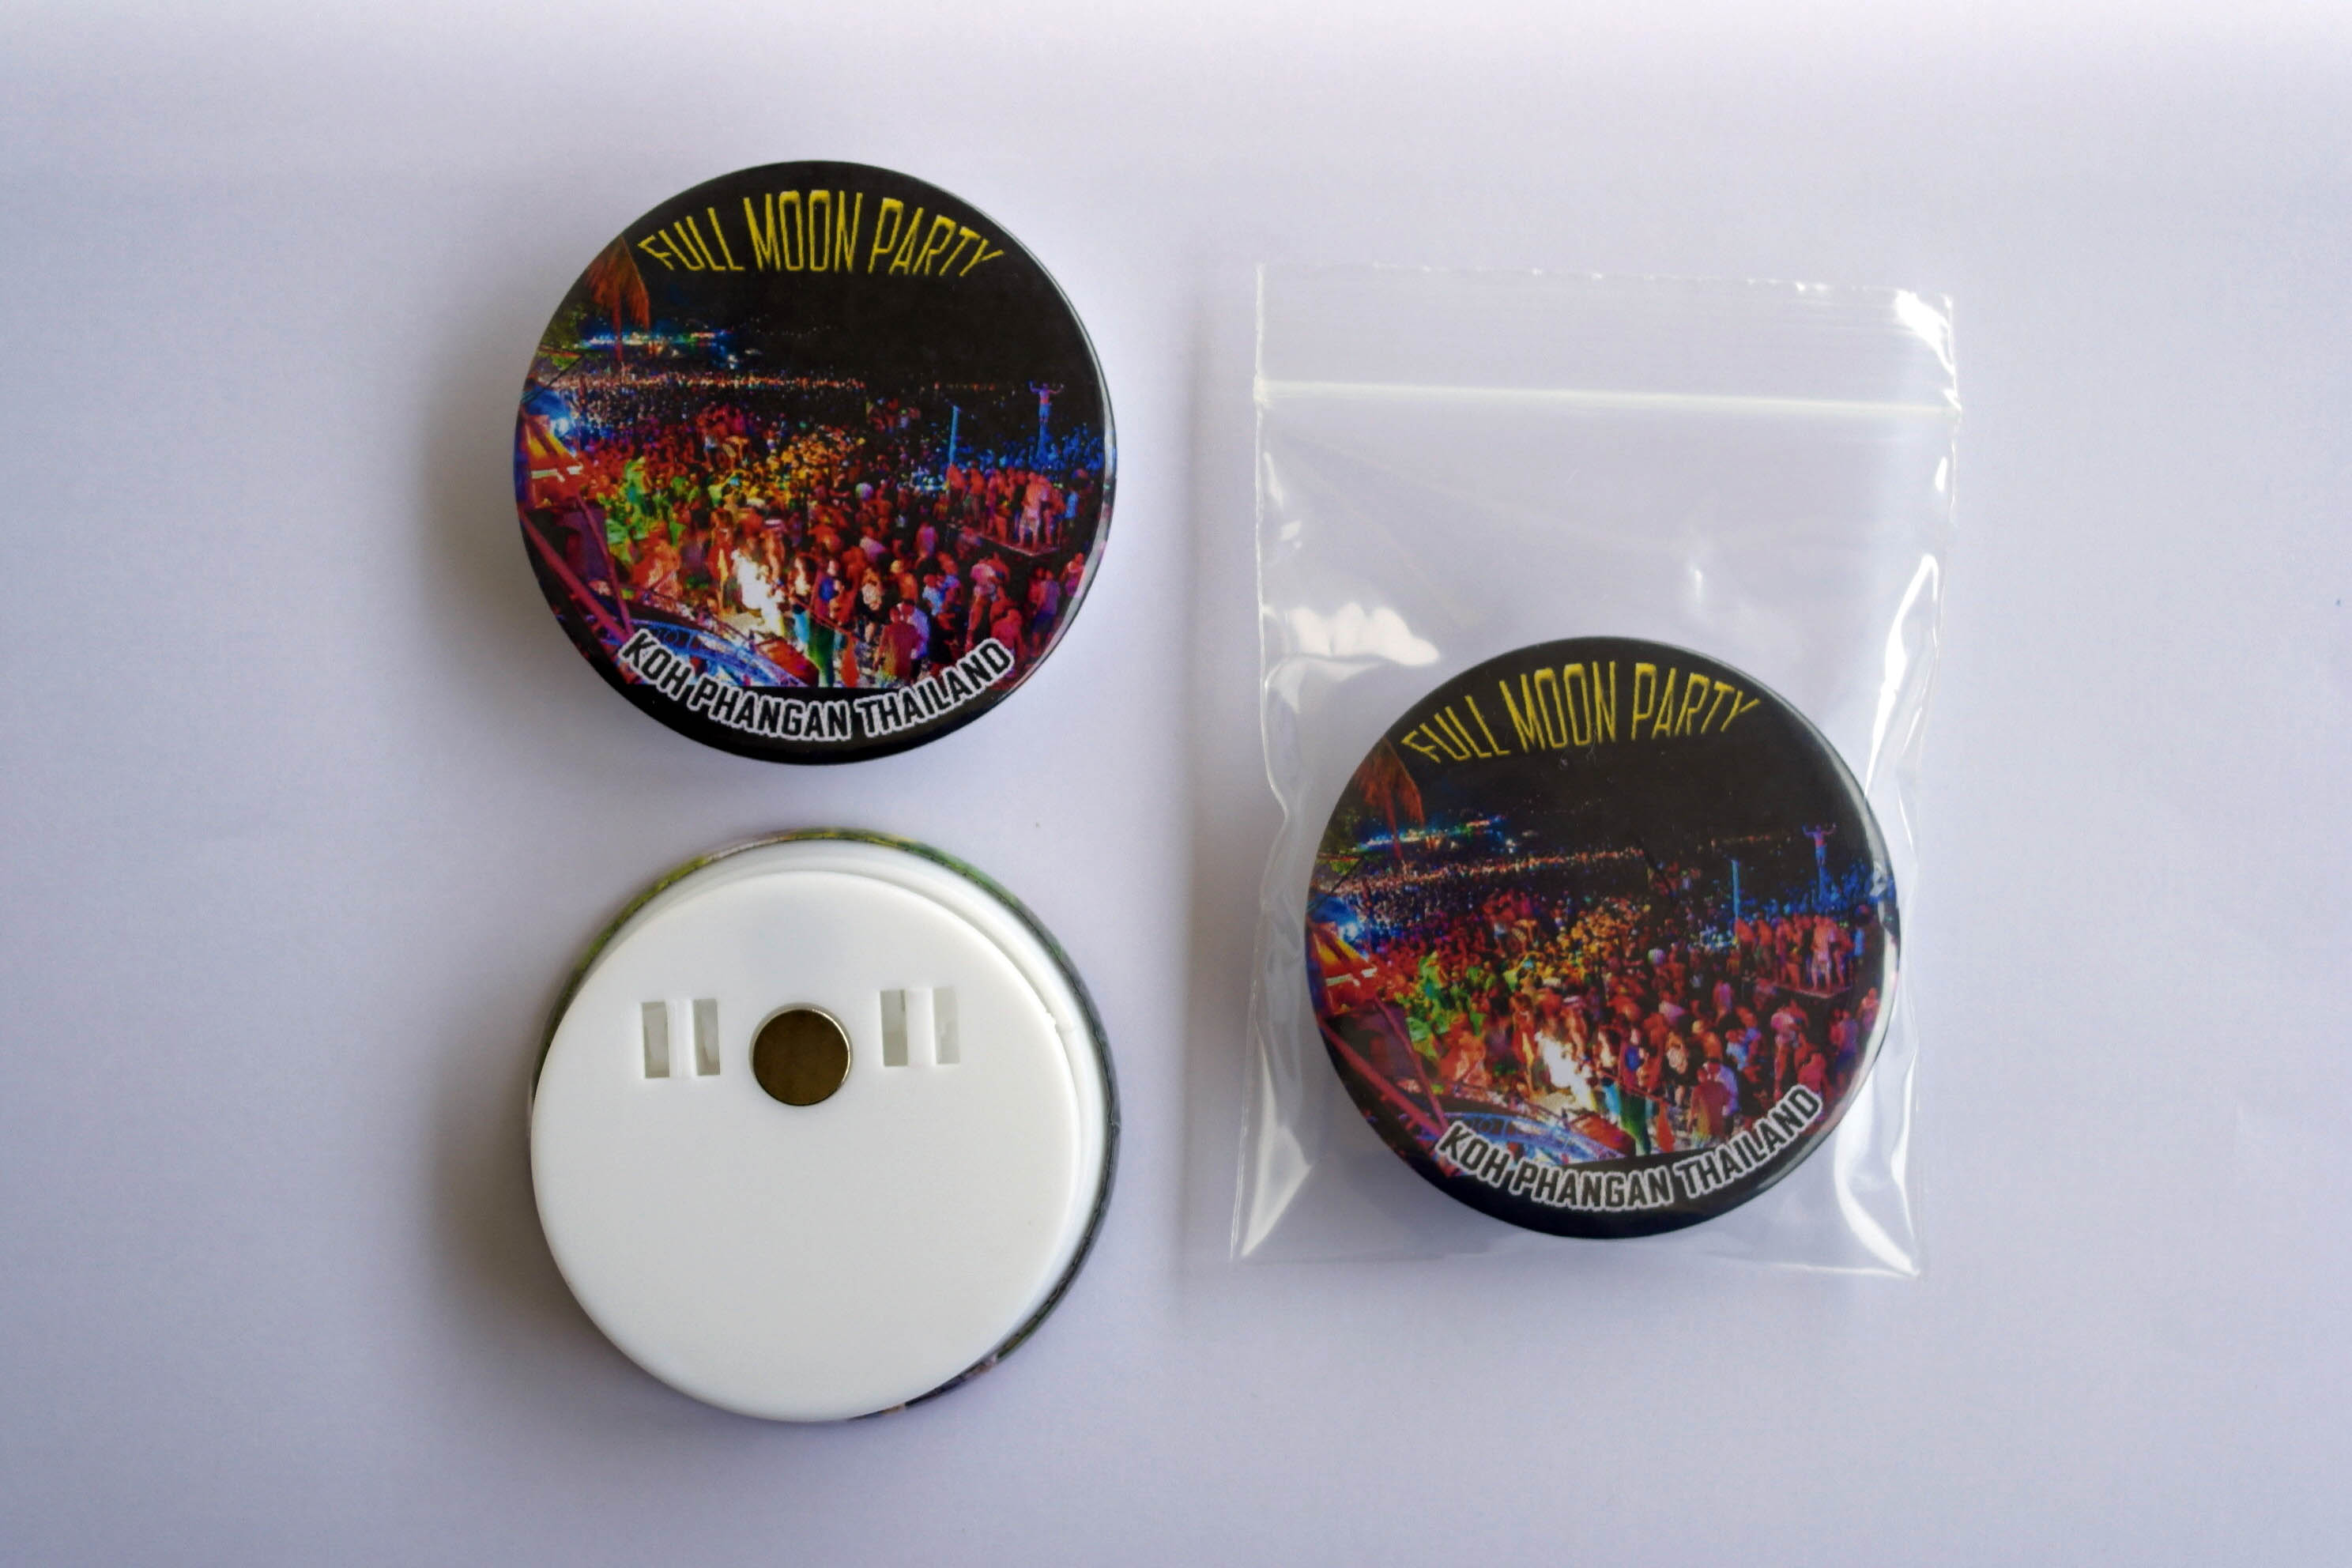 Koh Phangan Full Moon Party 58 mm Fridge Magnet with paper clip